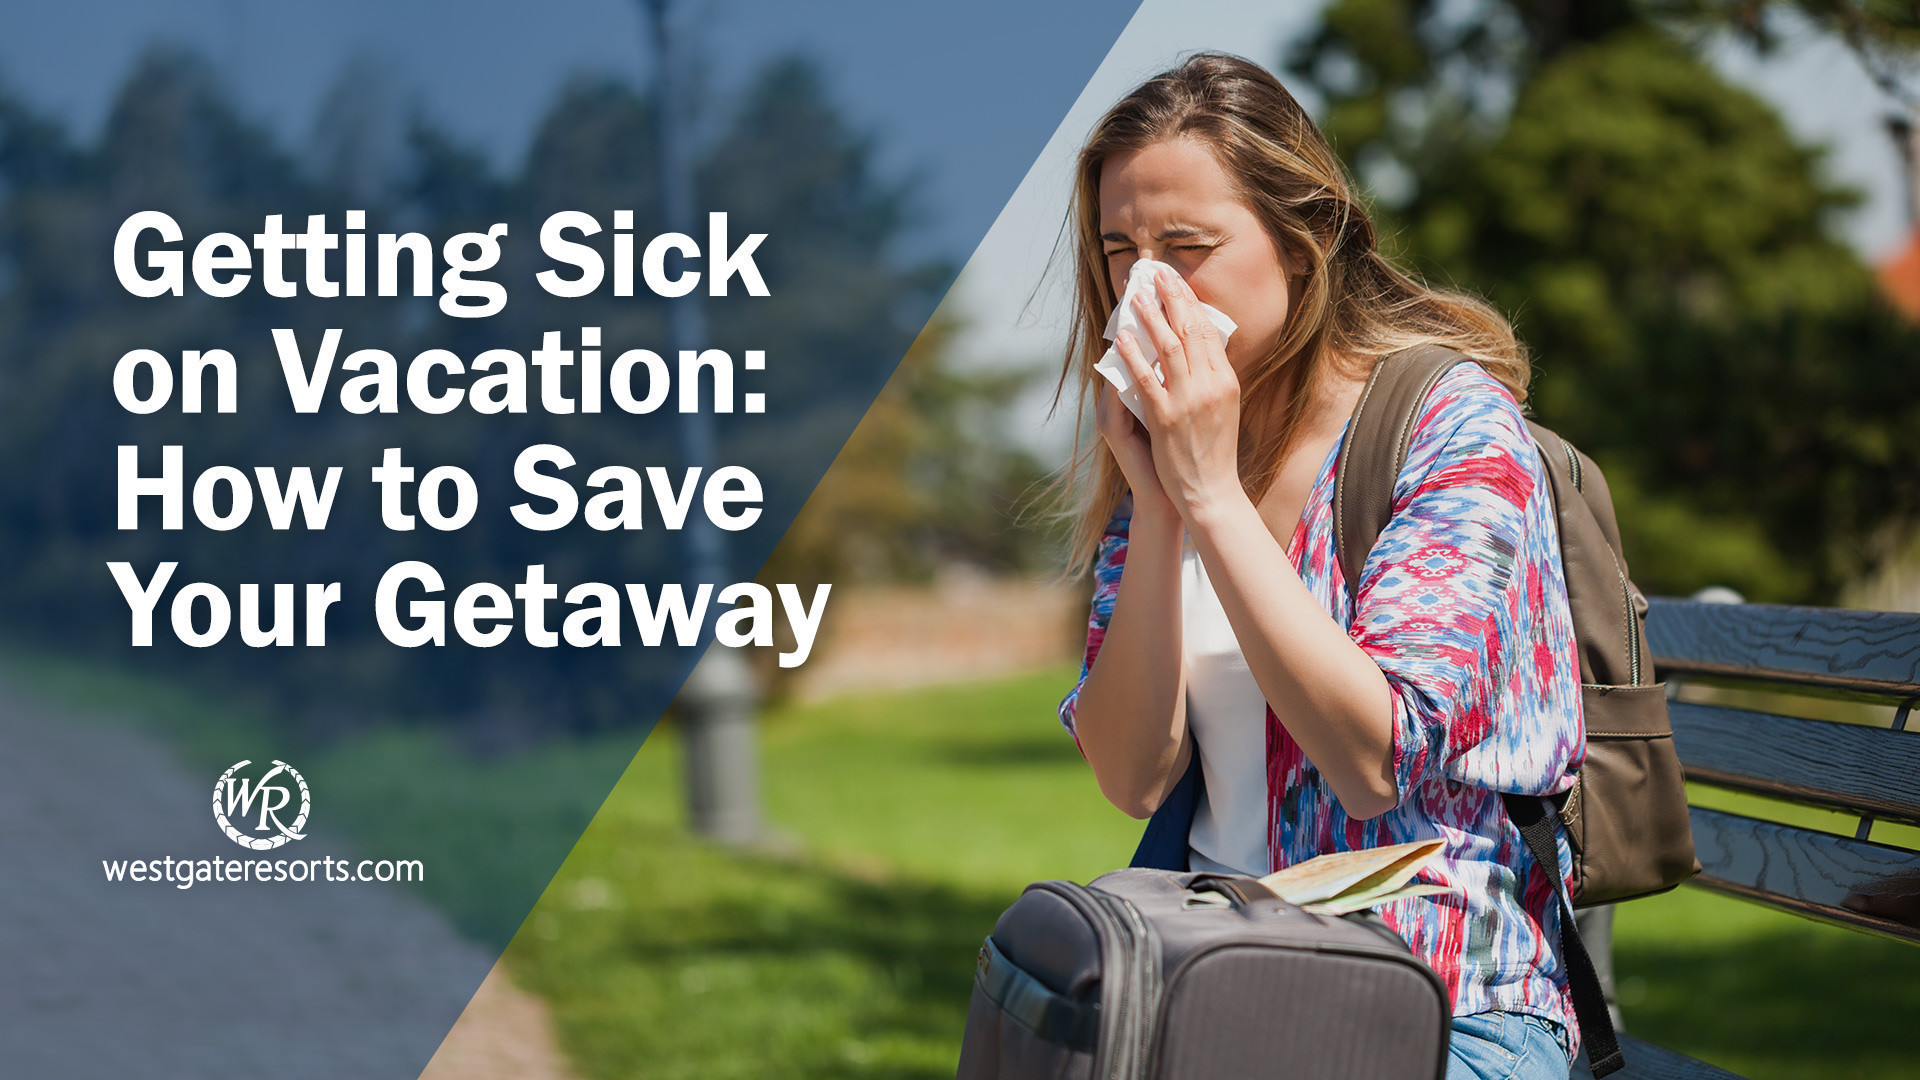 Getting Sick on Vacation: How to Save Your Getaway From Ill-Timed Illness | How To Avoid Getting Sick Before Vacation And What To Do About It After You Do Get Sick!